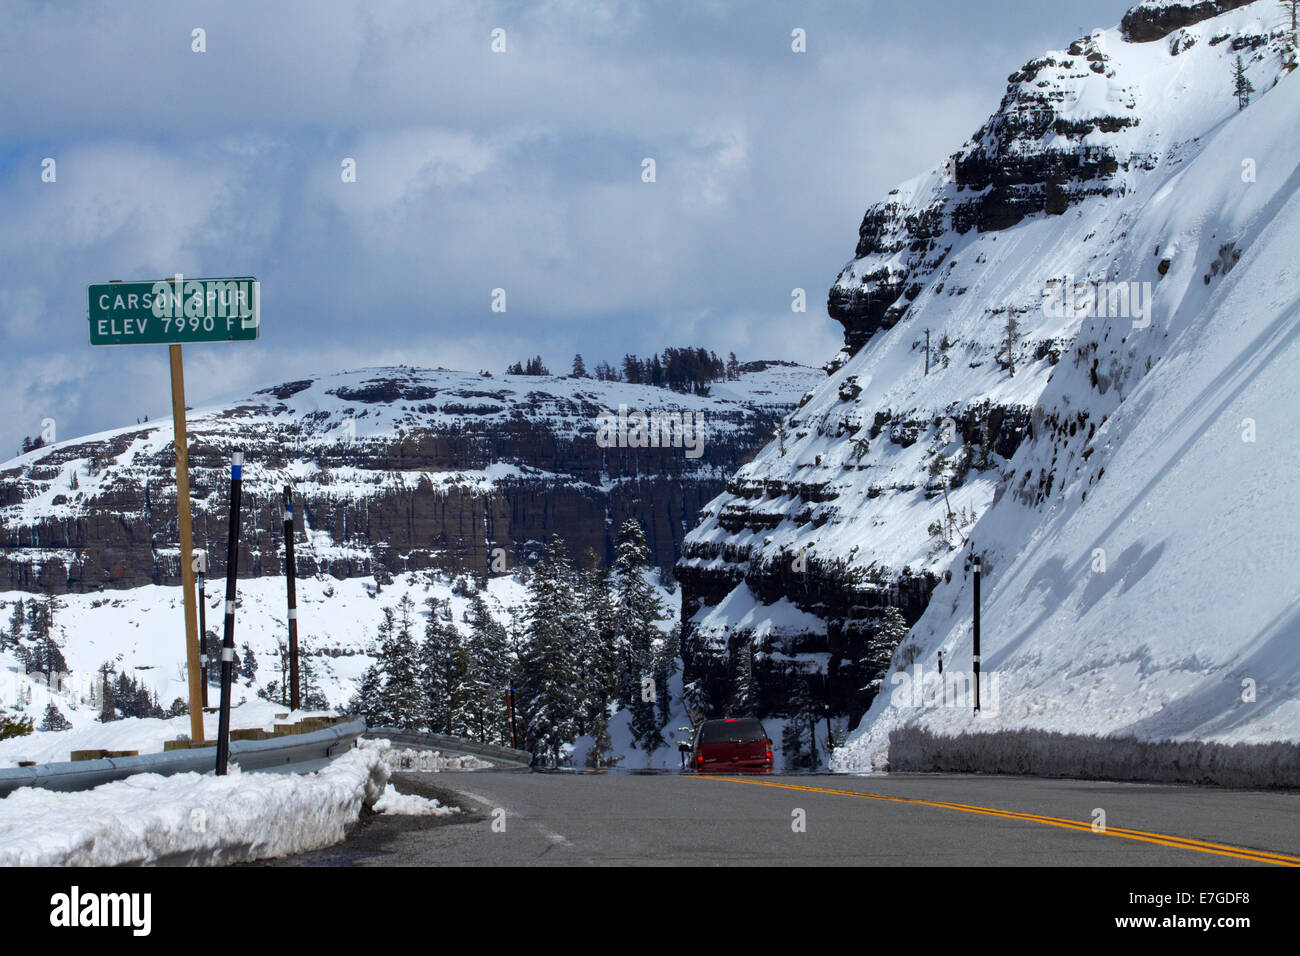 Snow and road at Carson Spur (elevation 7990ft), Carson Pass Highway (SR 88), over Sierra Nevada, California, USA - Stock Image